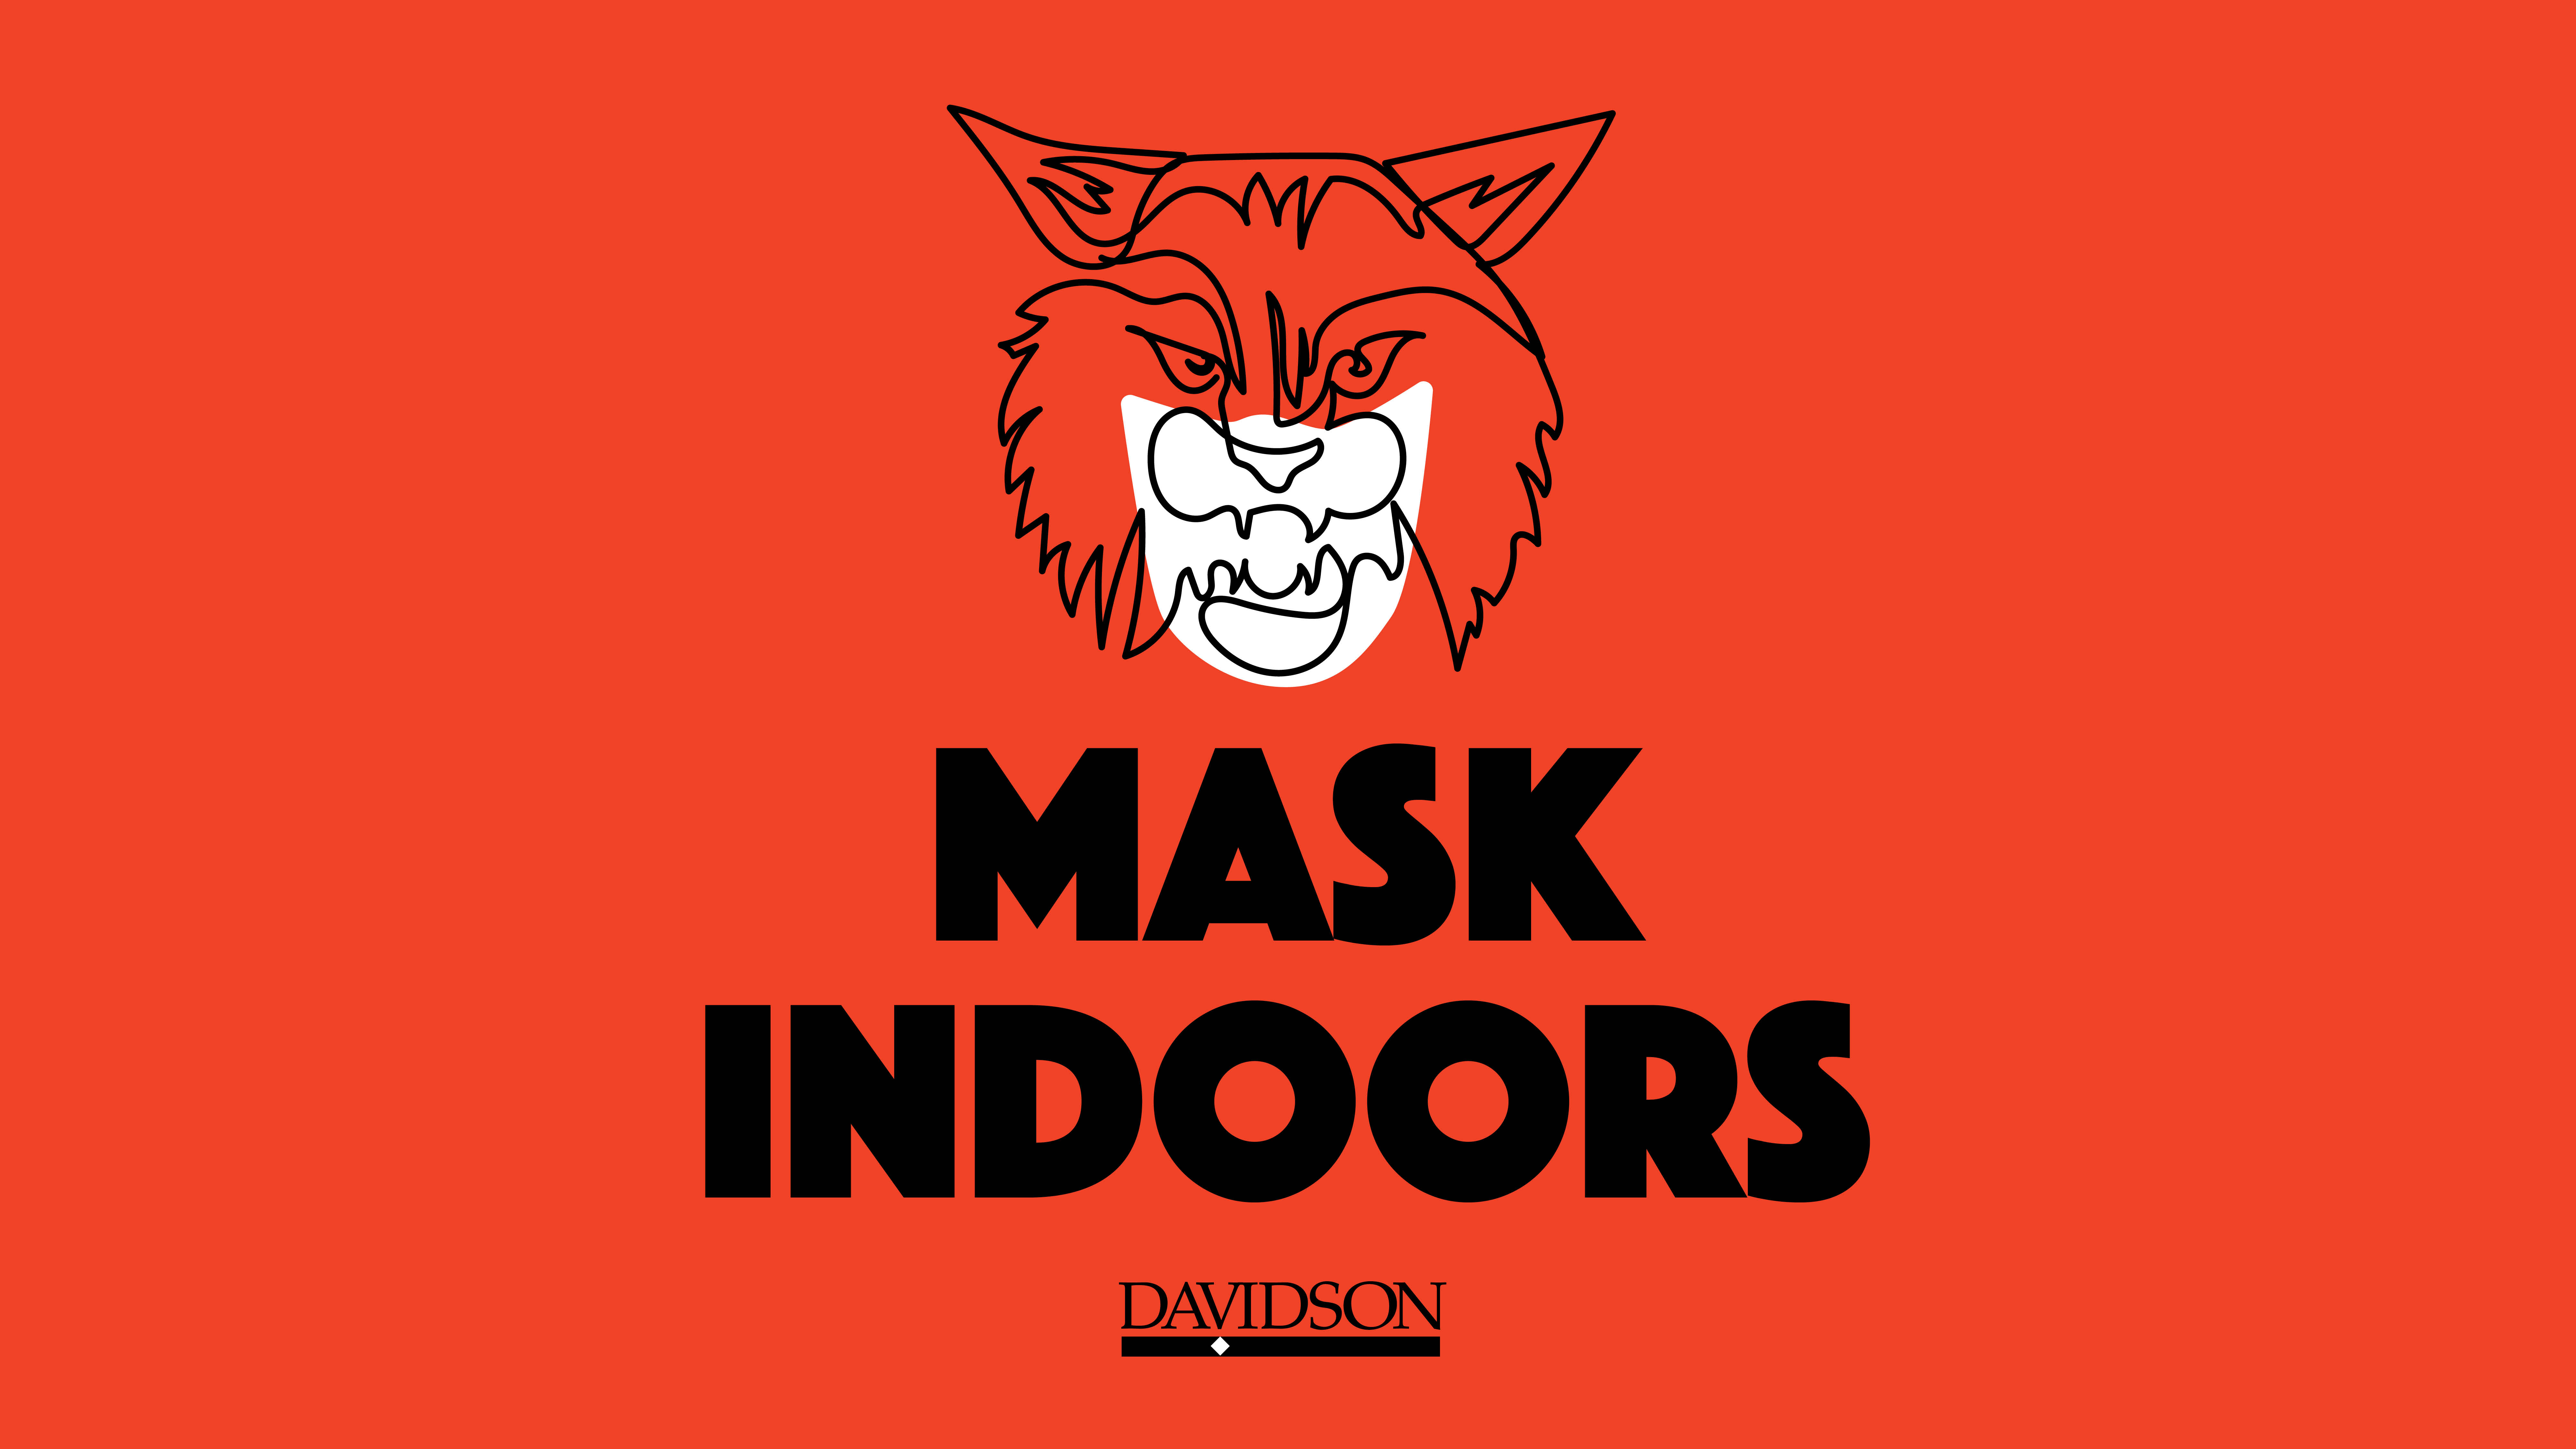 Wildcat outline wearing mask with Mask Indoors text